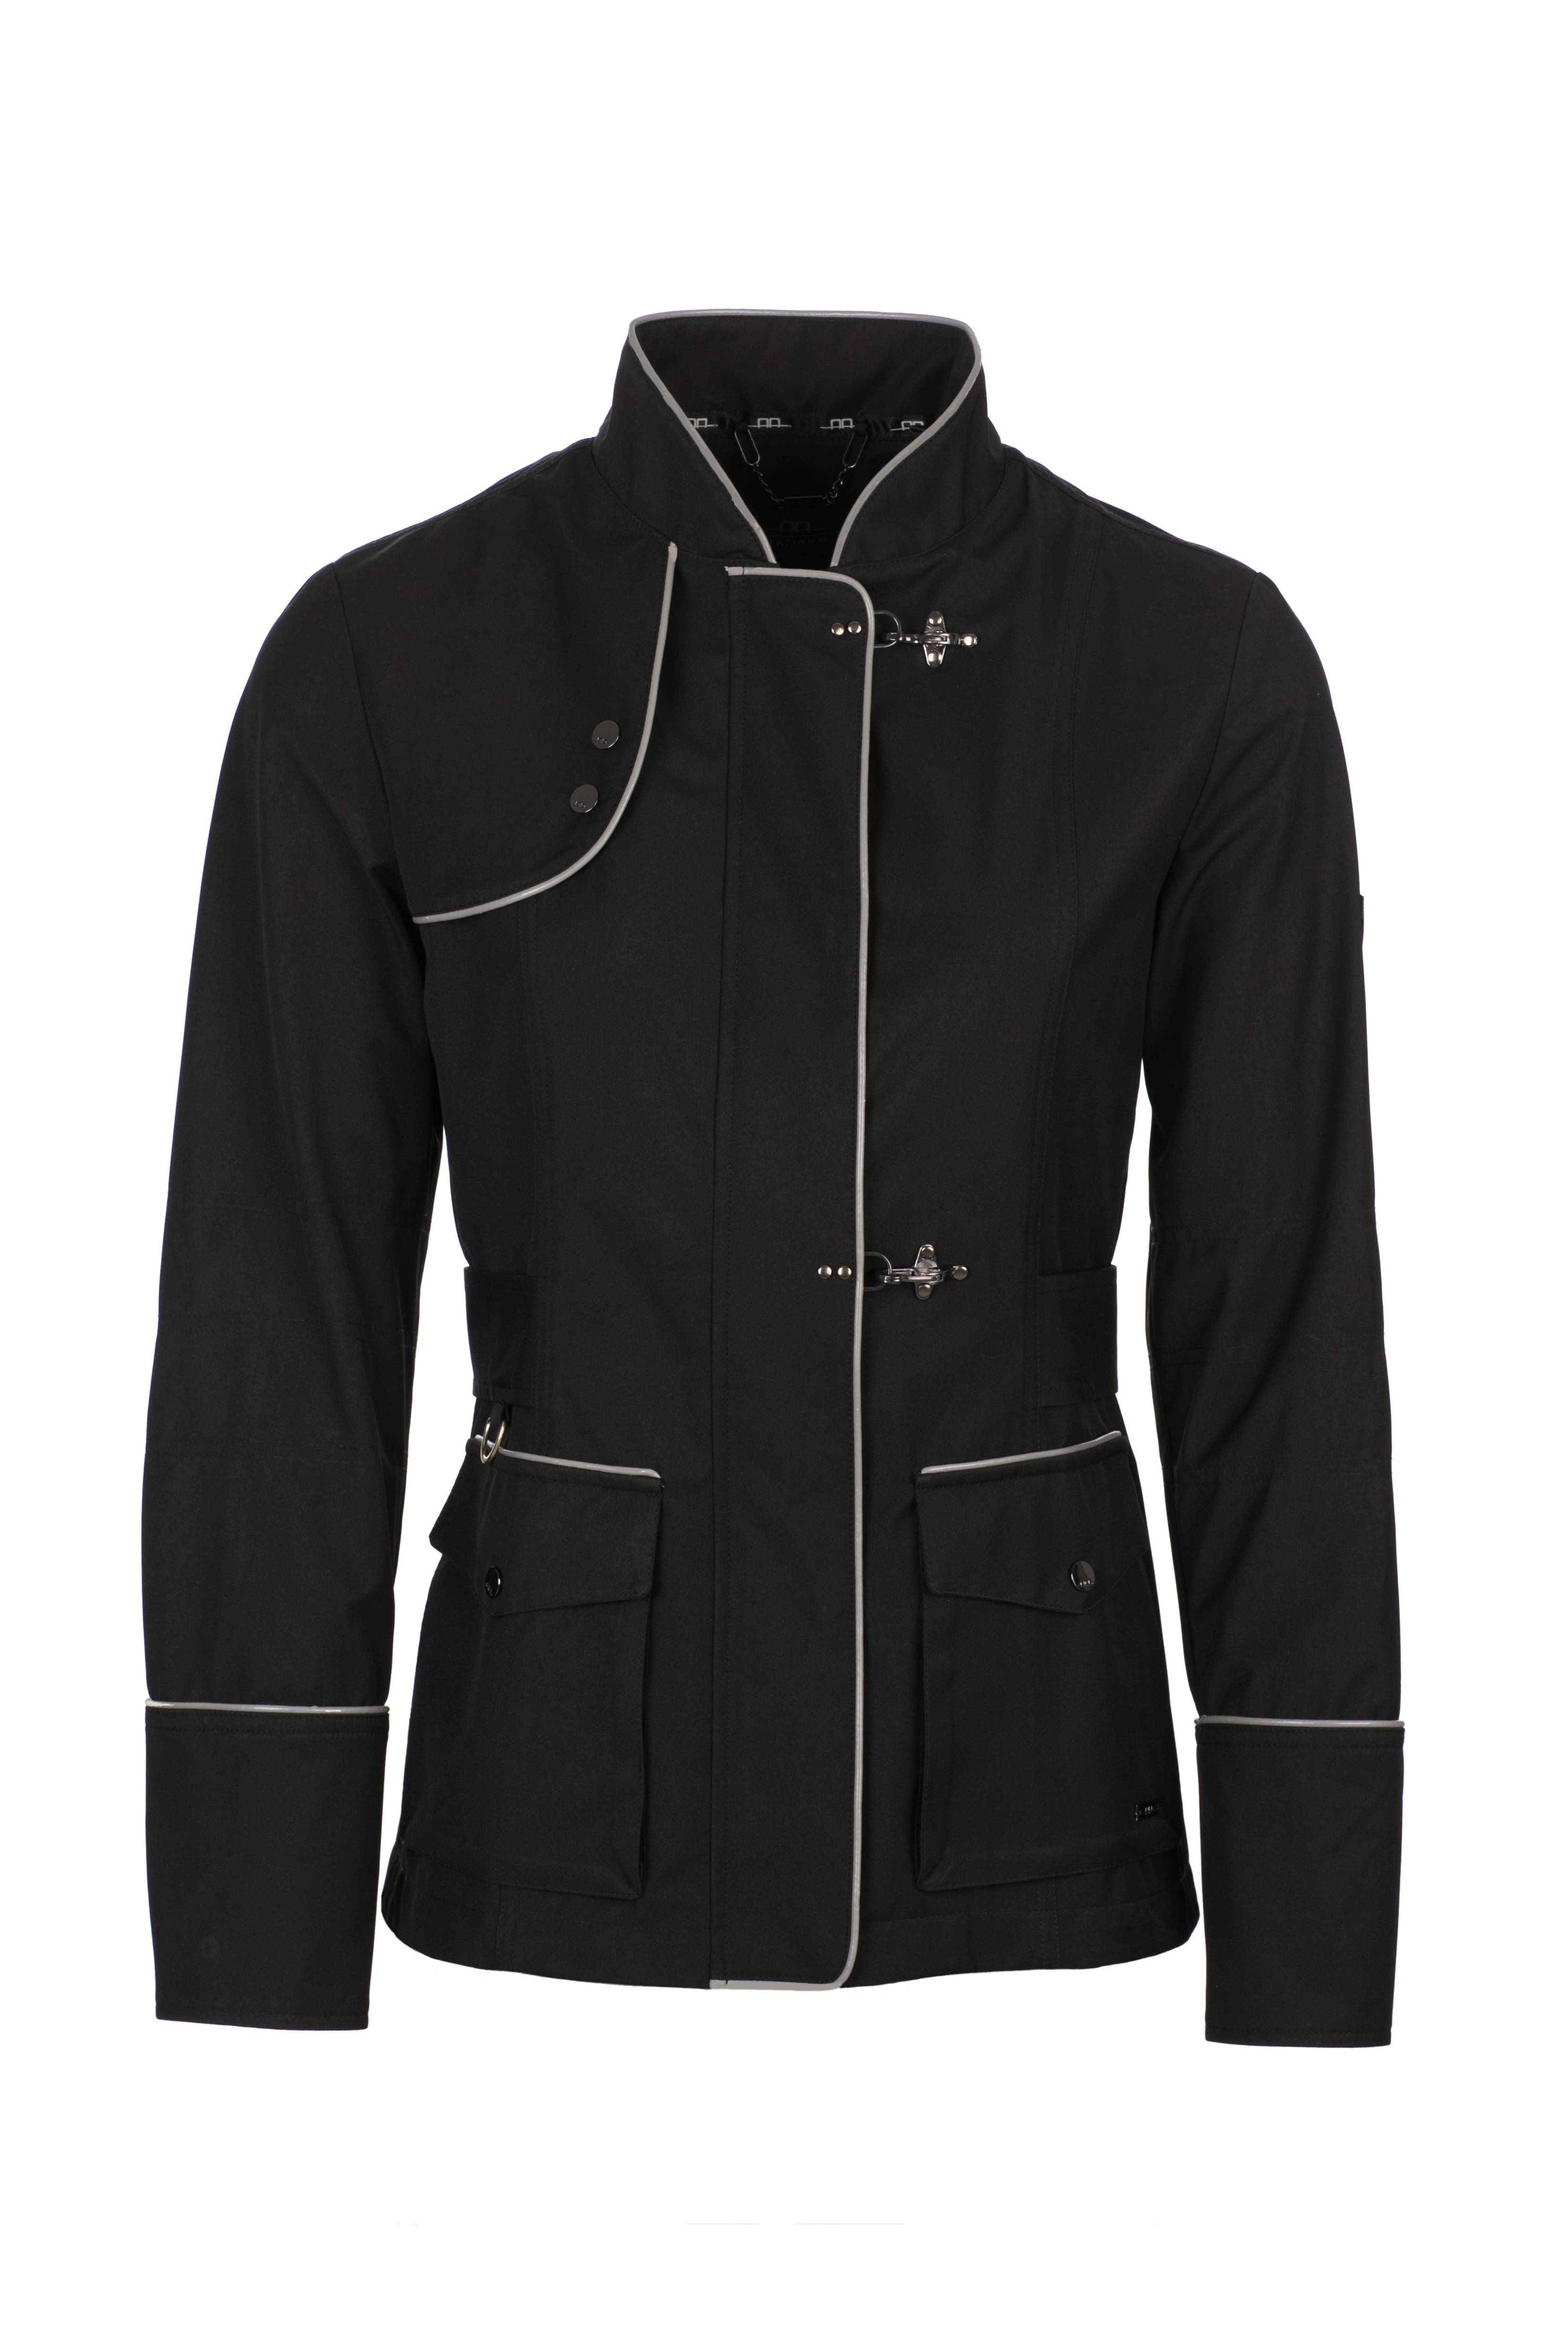 Alessandro Albanese Imperia Waterproof Jacket Ladies